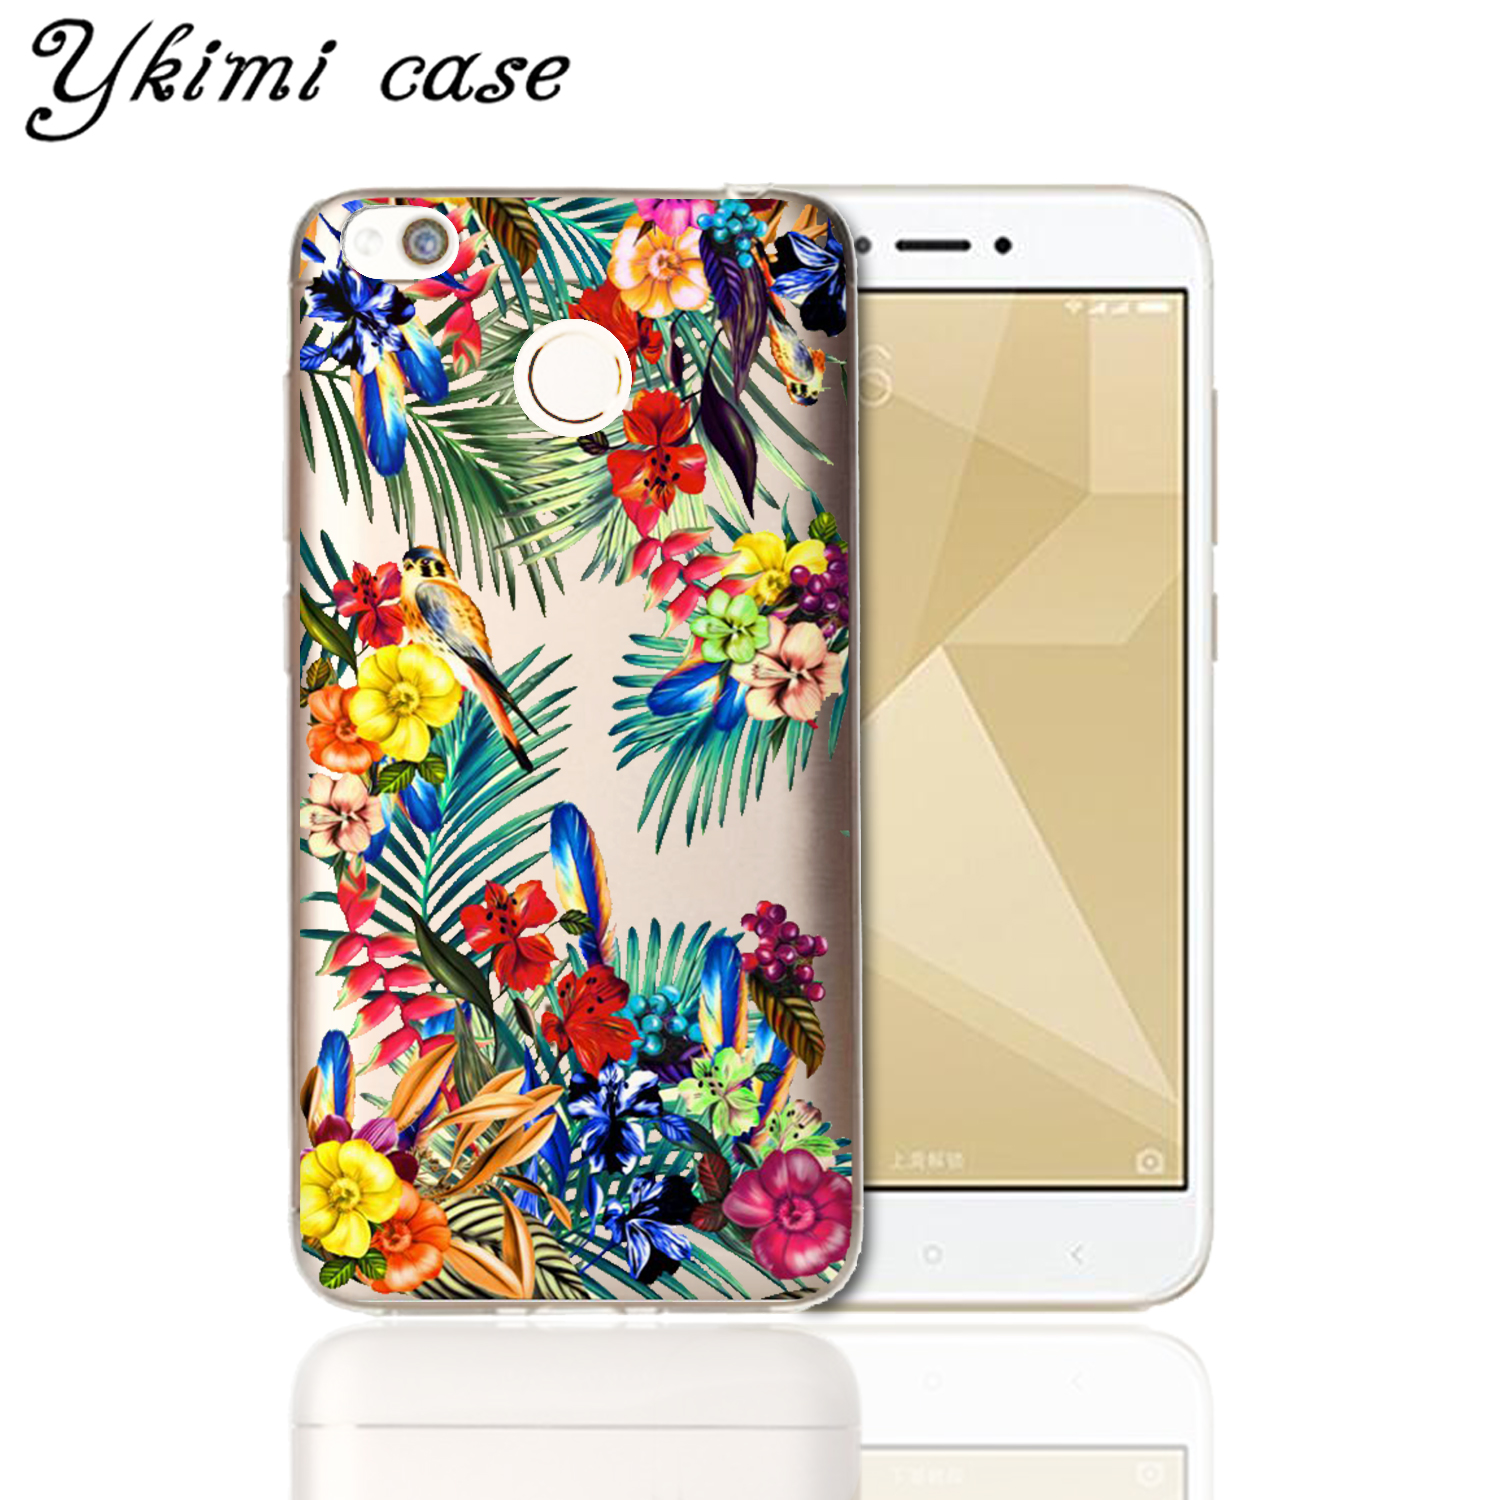 Fashion transparent soft silicone tpu capa for xiaomi redmi 4x cover fashion transparent soft silicone tpu capa for xiaomi redmi 4x cover case beautiful cartoon flower design phone shell in fitted cases from cellphones izmirmasajfo